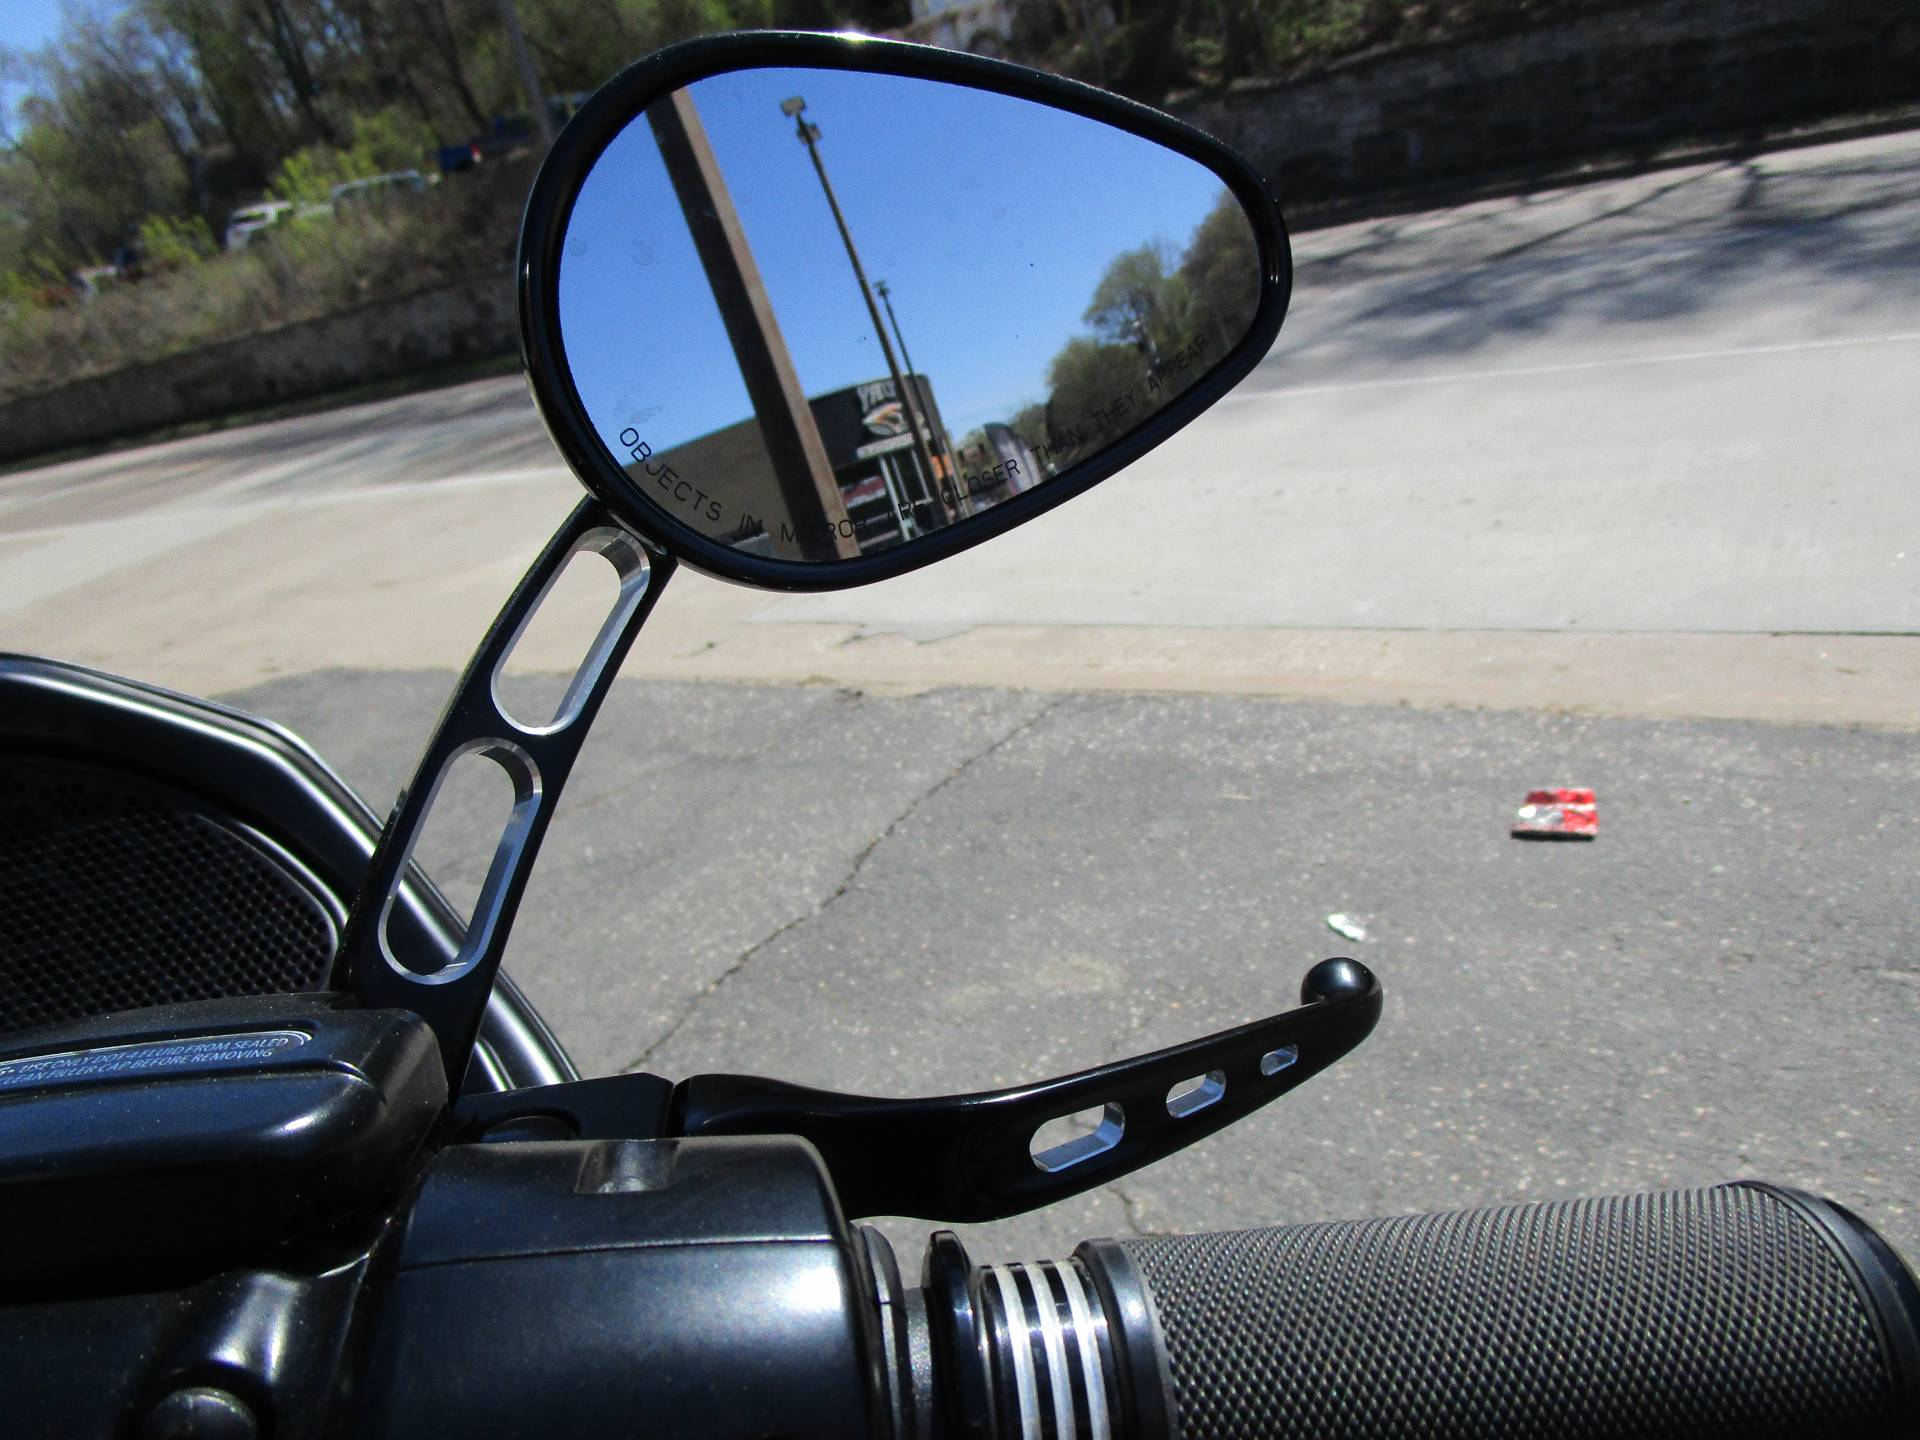 2015 Harley-Davidson FLTRXS ROAD GLIDE SPECIAL in South Saint Paul, Minnesota - Photo 10